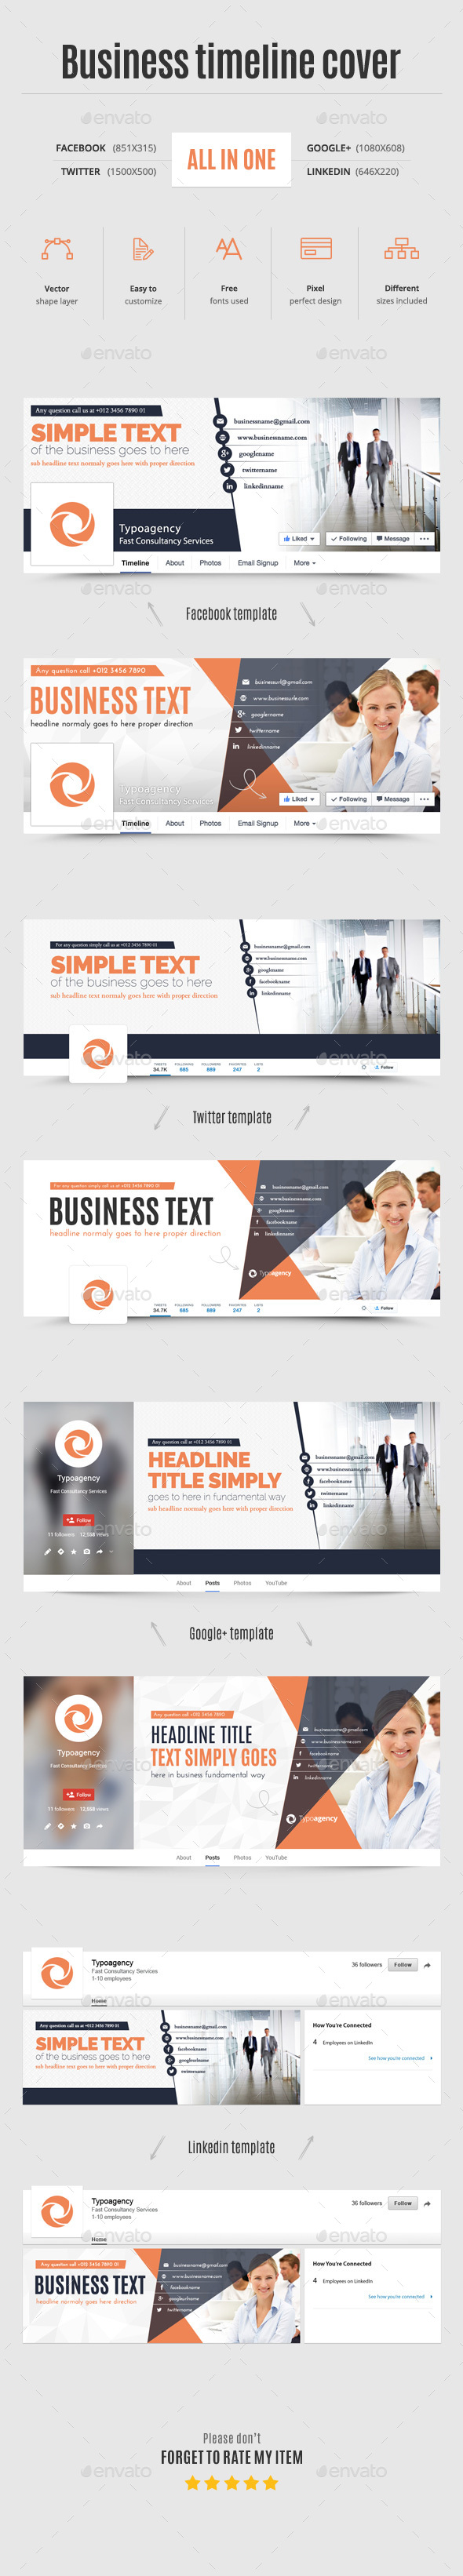 All in One Business Timeline Cover - Social Media Web Elements